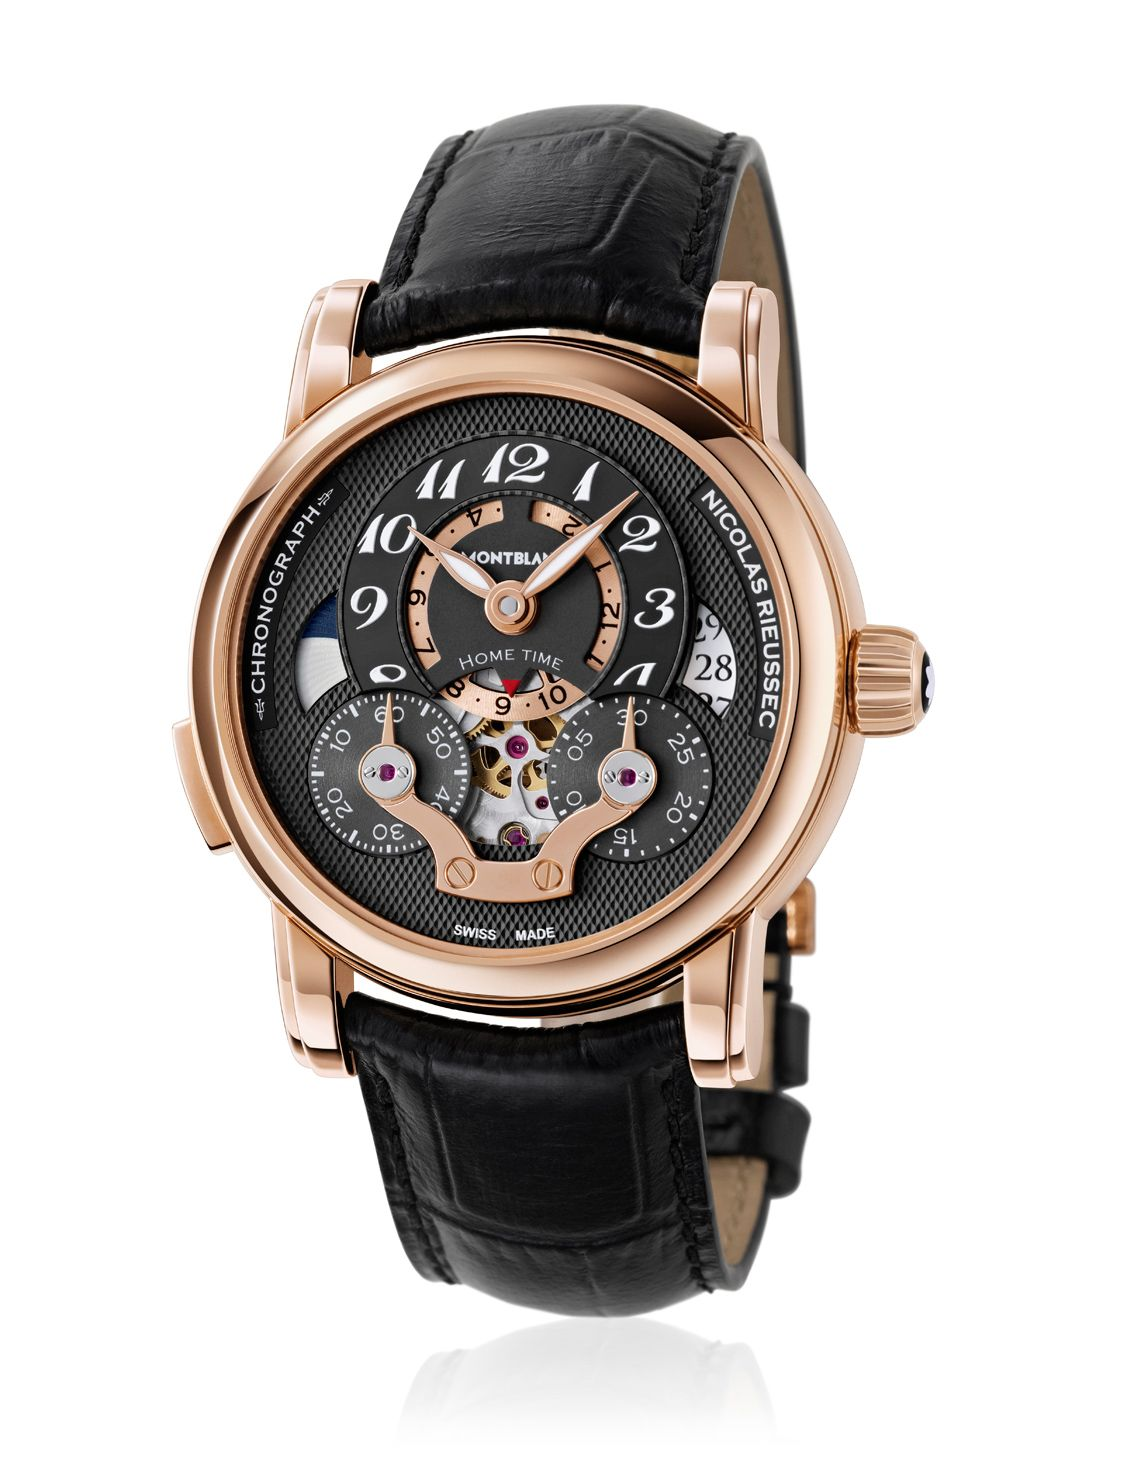 Montblanc Nicolas Rieussec Chronograph Open Home Time Red Gold